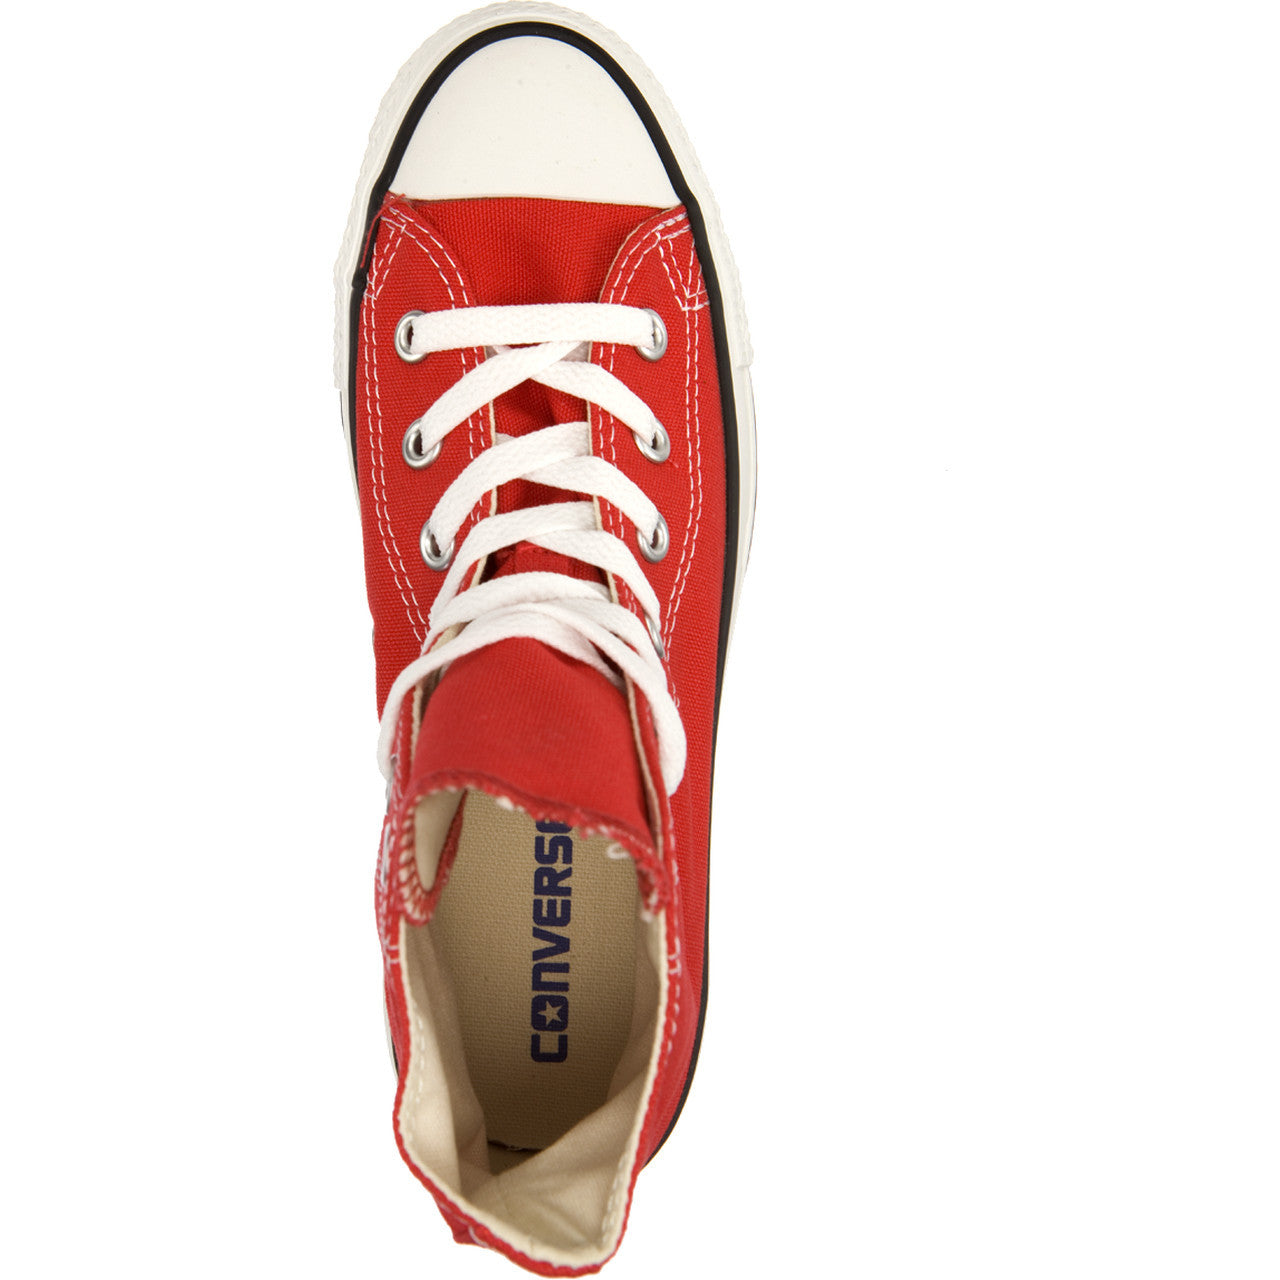 07425f9d785 Converse Unisex Red Chuck Taylor All Star High Top